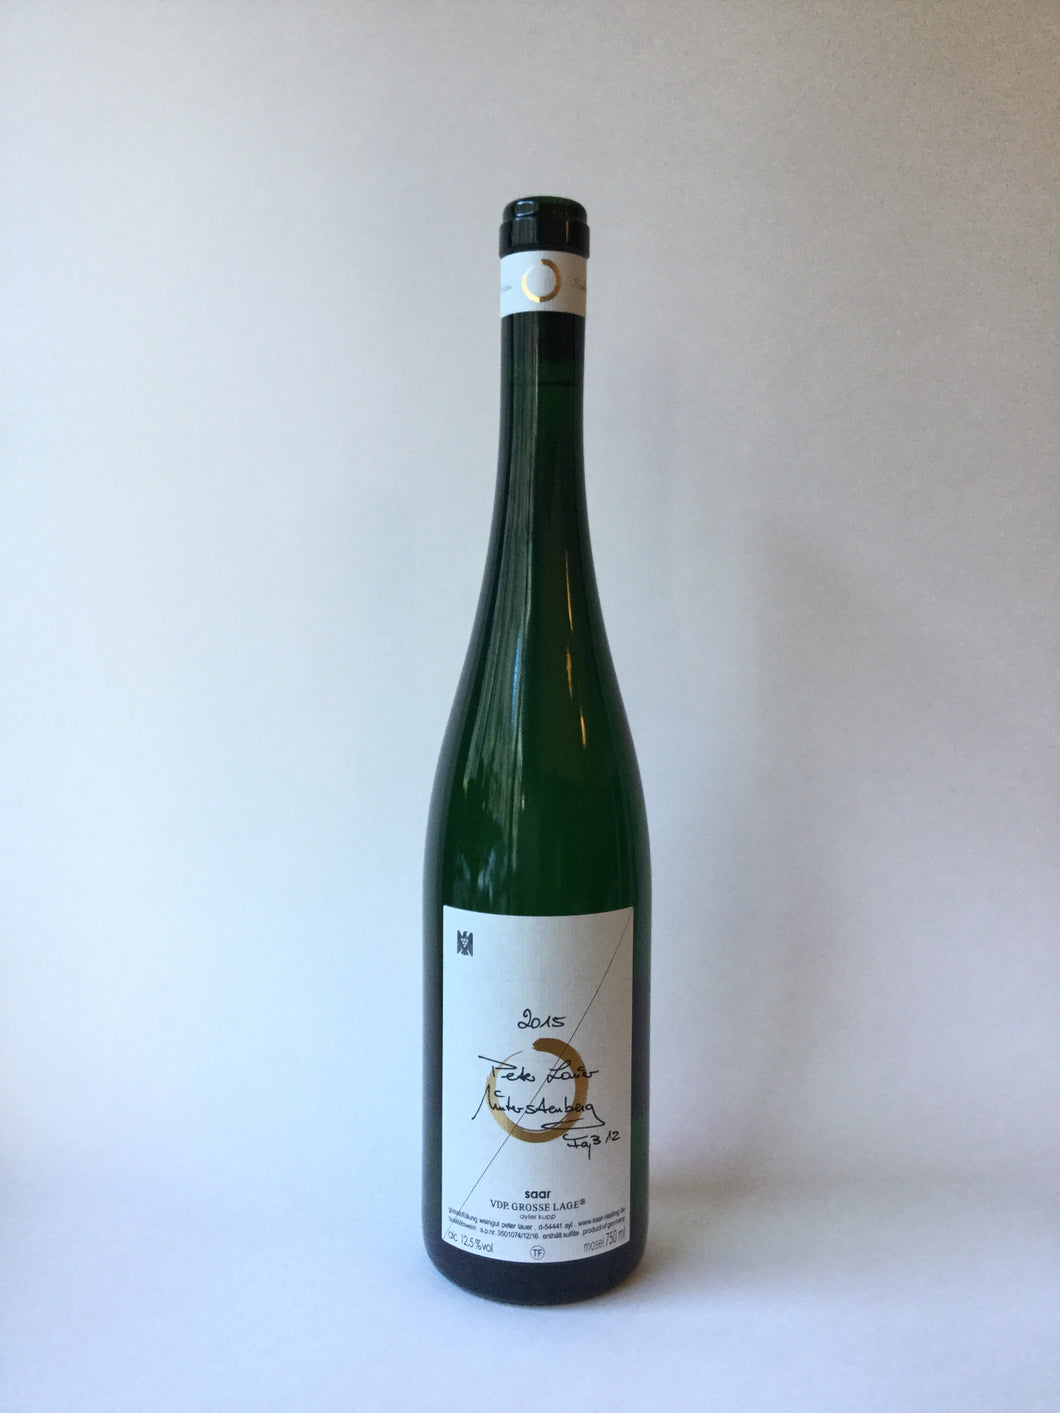 Peter Lauer Riesling Fass 15 'Stirn' 2016, 750ml